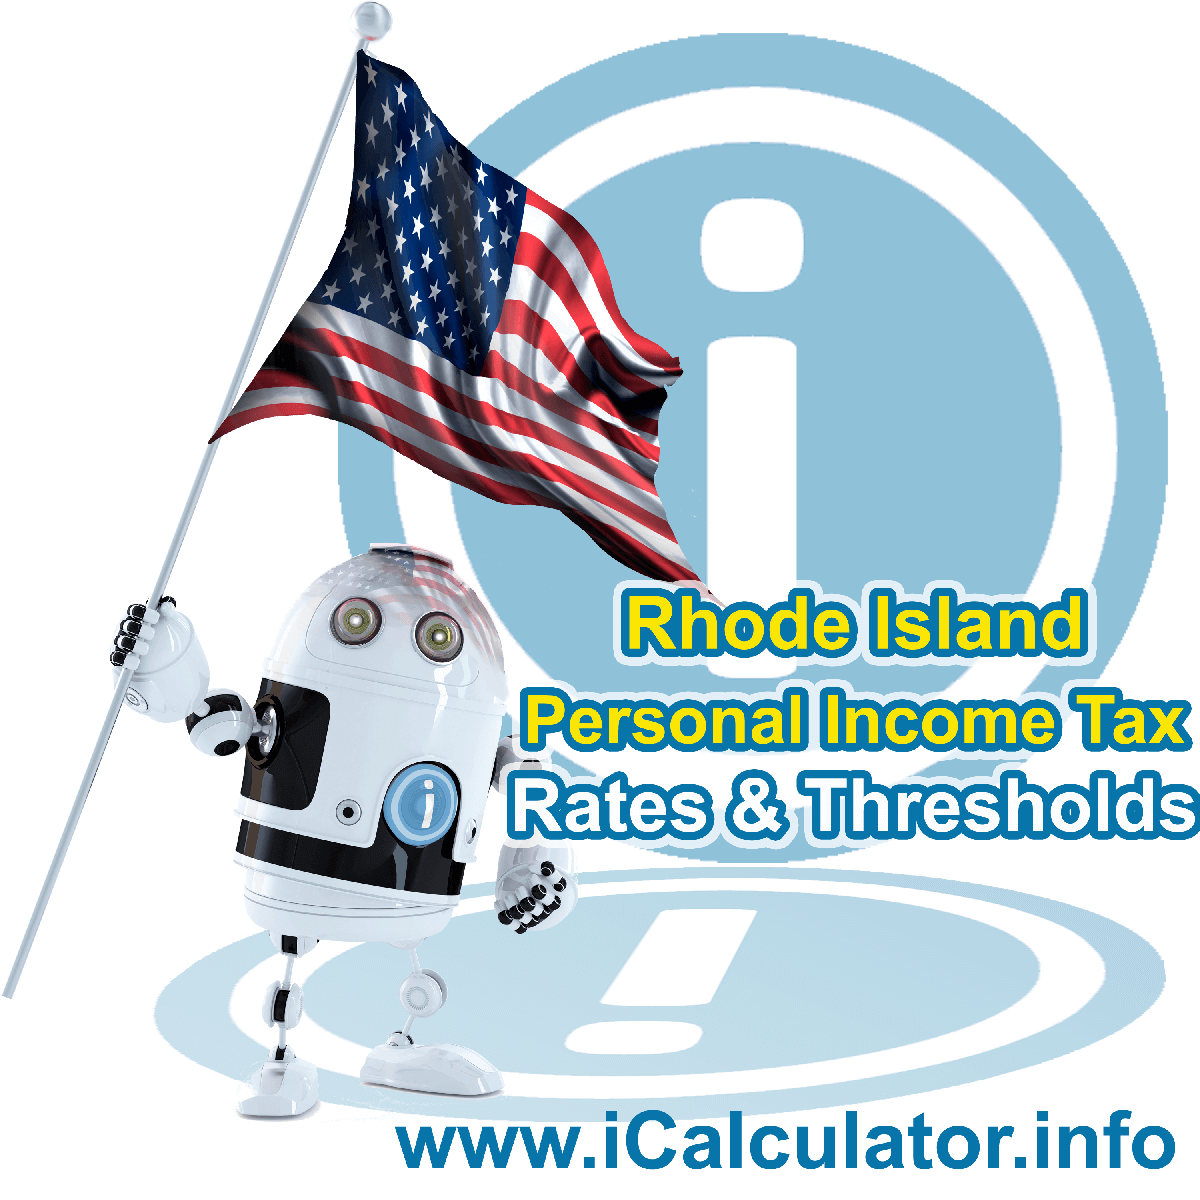 Rhode Island State Tax Tables 2014. This image displays details of the Rhode Island State Tax Tables for the 2014 tax return year which is provided in support of the 2014 US Tax Calculator